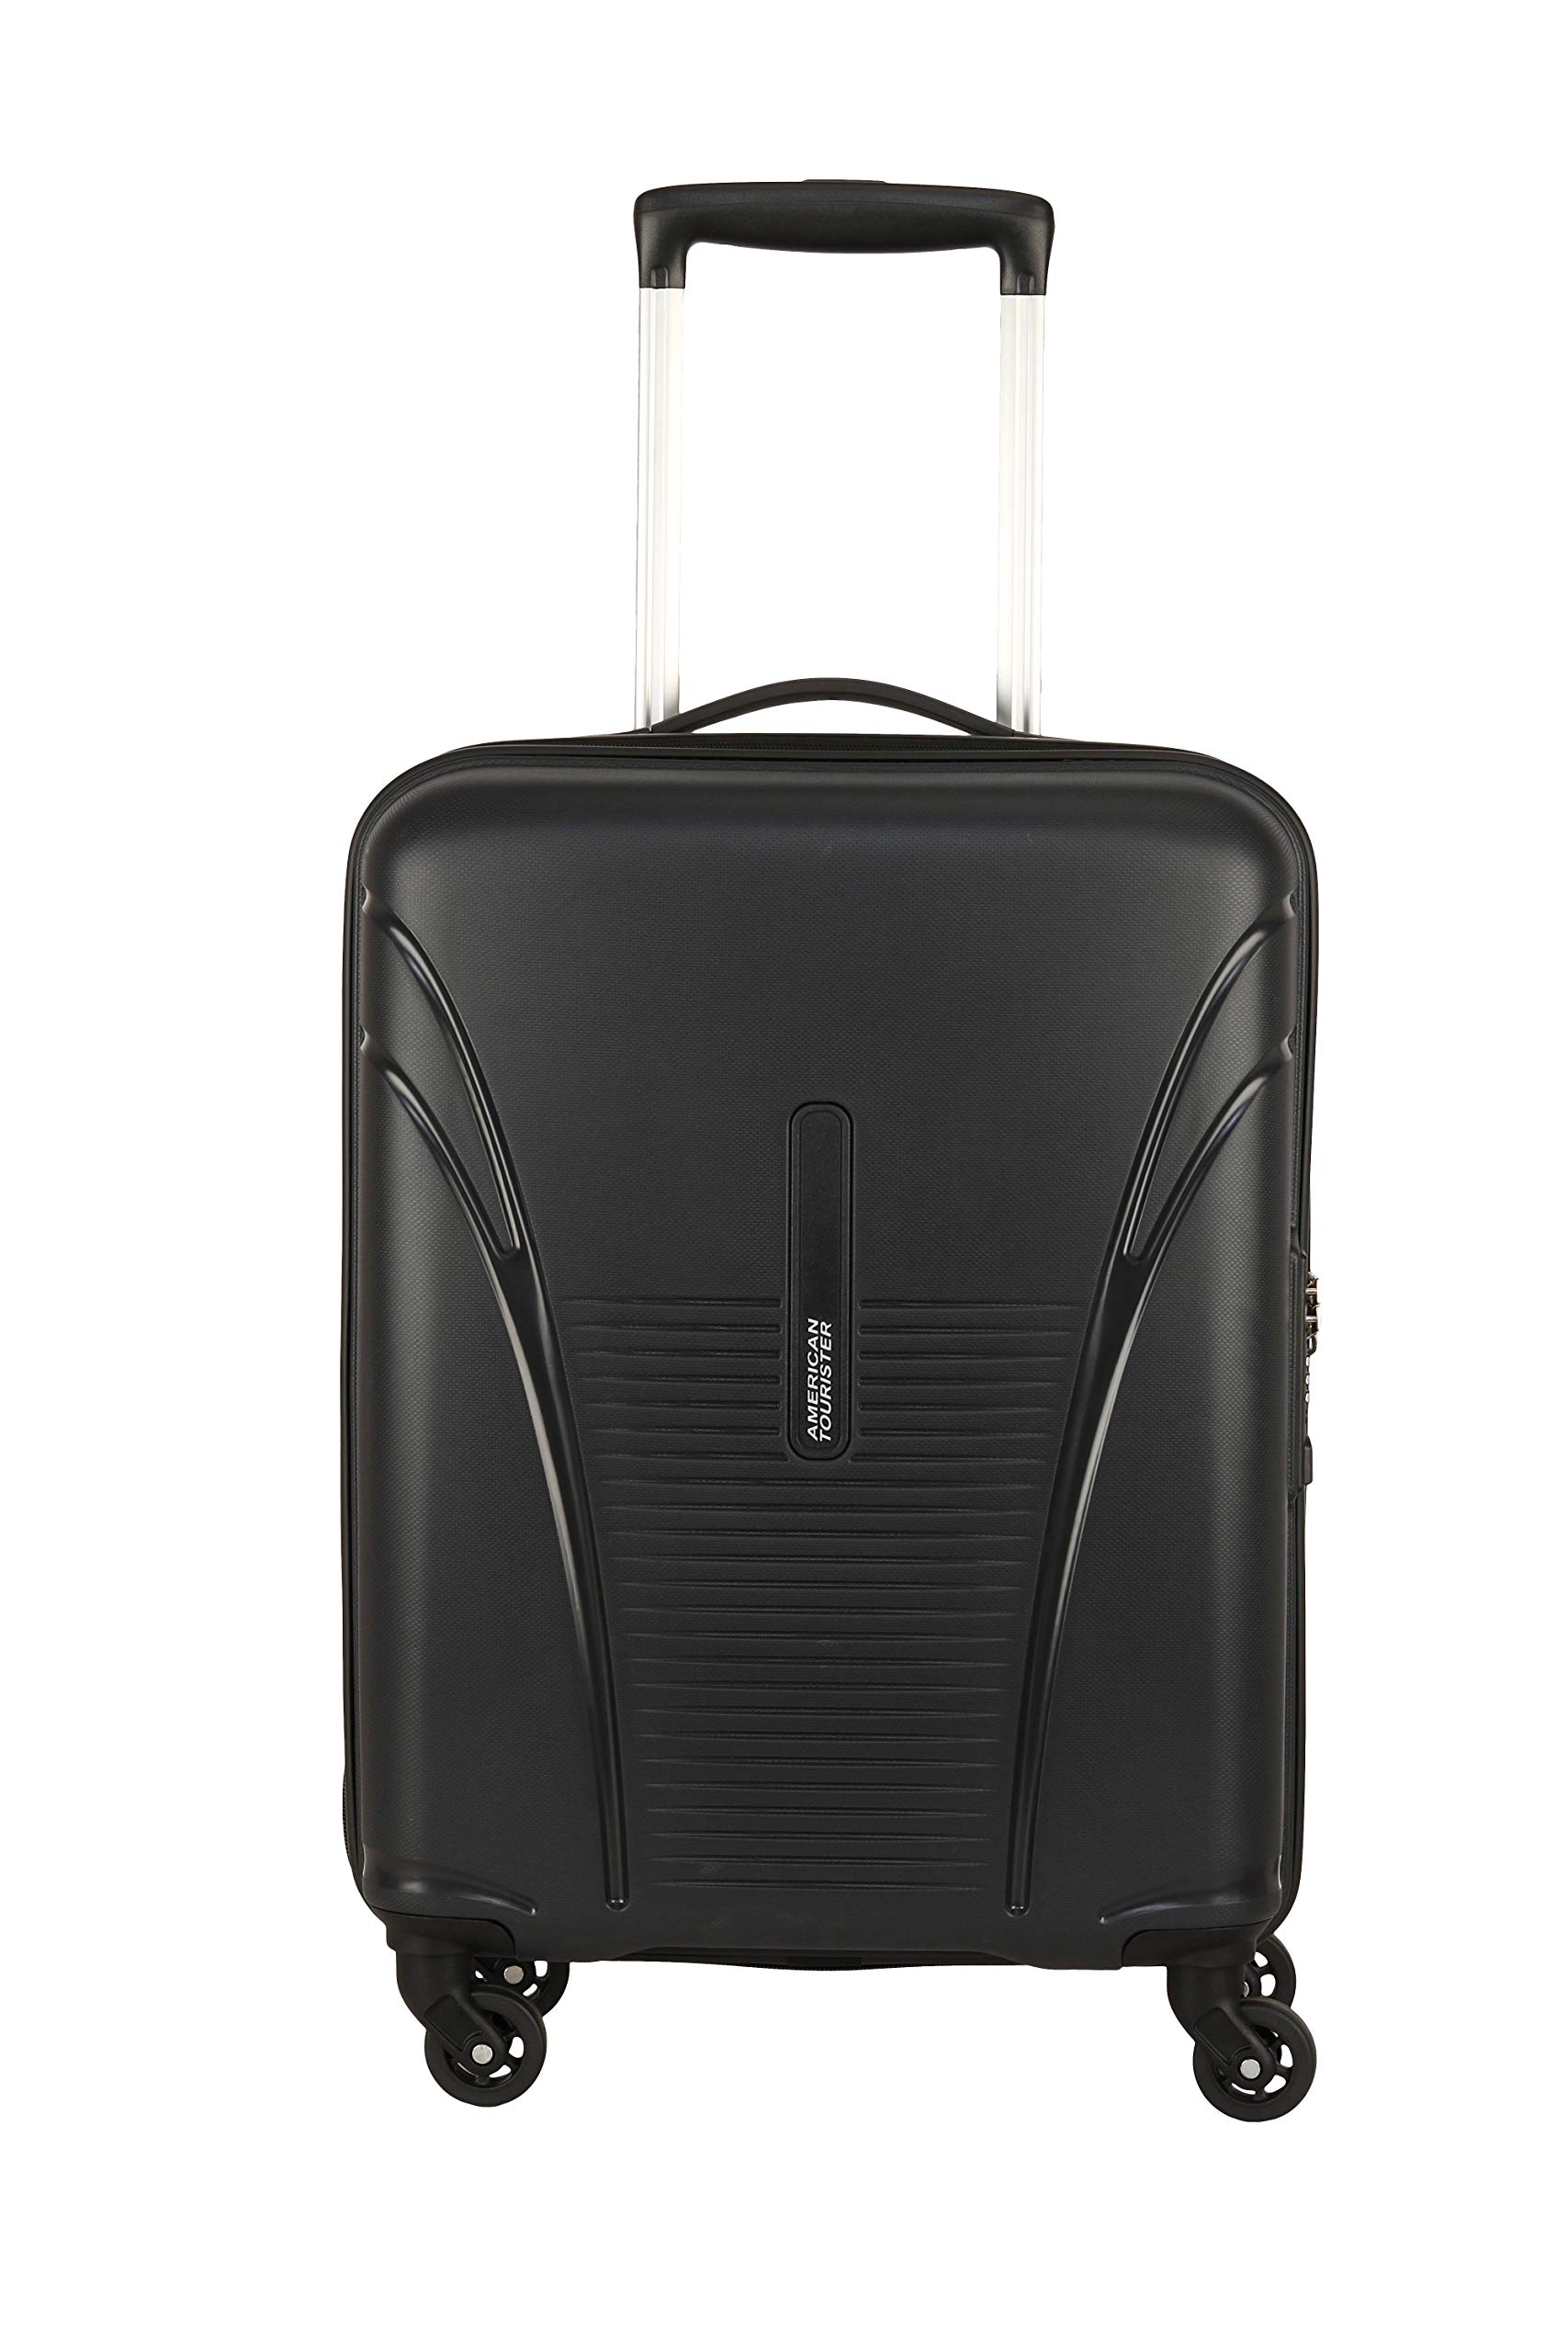 American Tourister Ivy